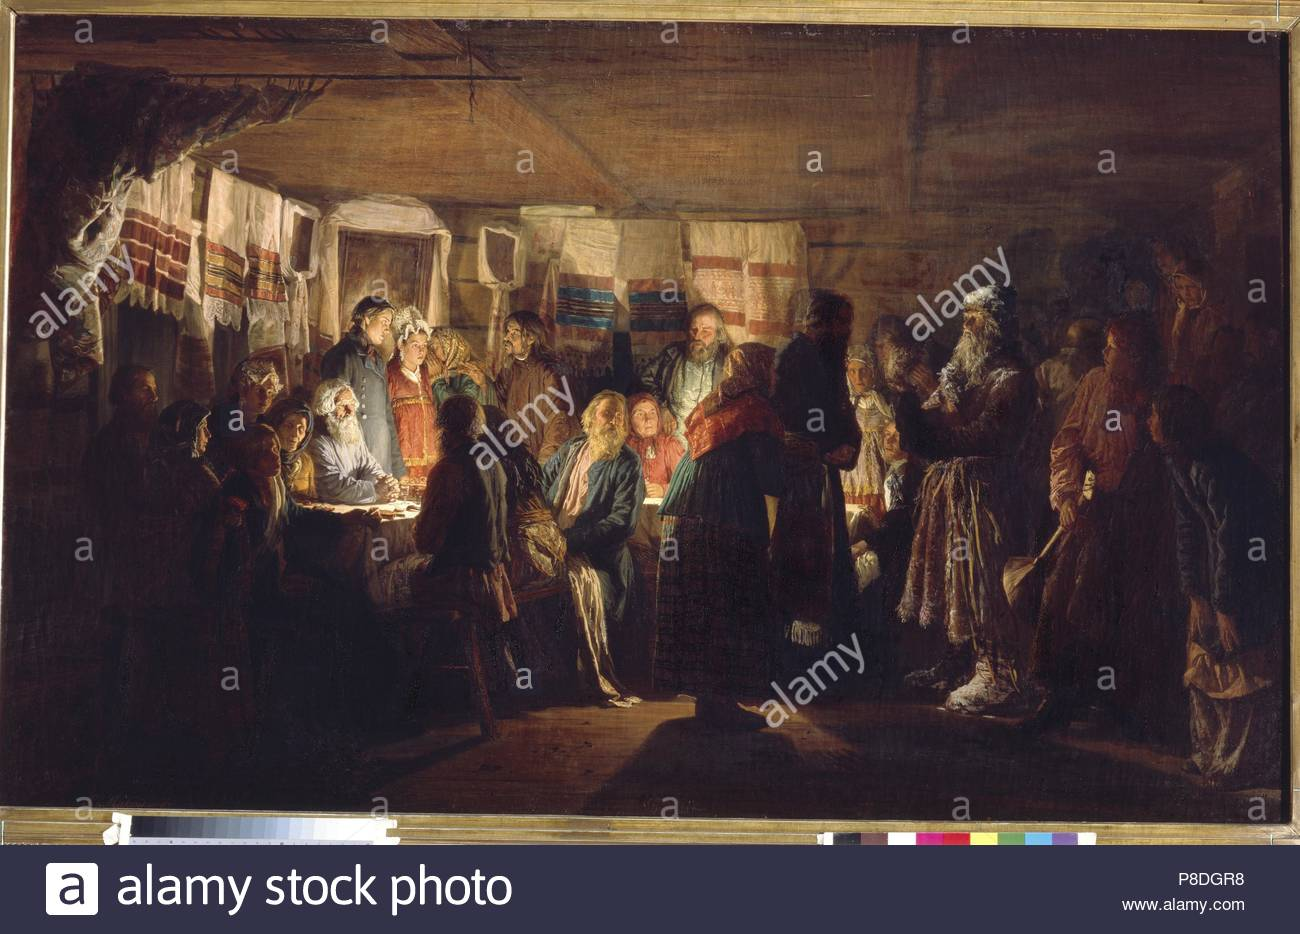 A Sorcerer comes to a peasant wedding. Museum: State Tretyakov Gallery, Moscow. - Stock Image